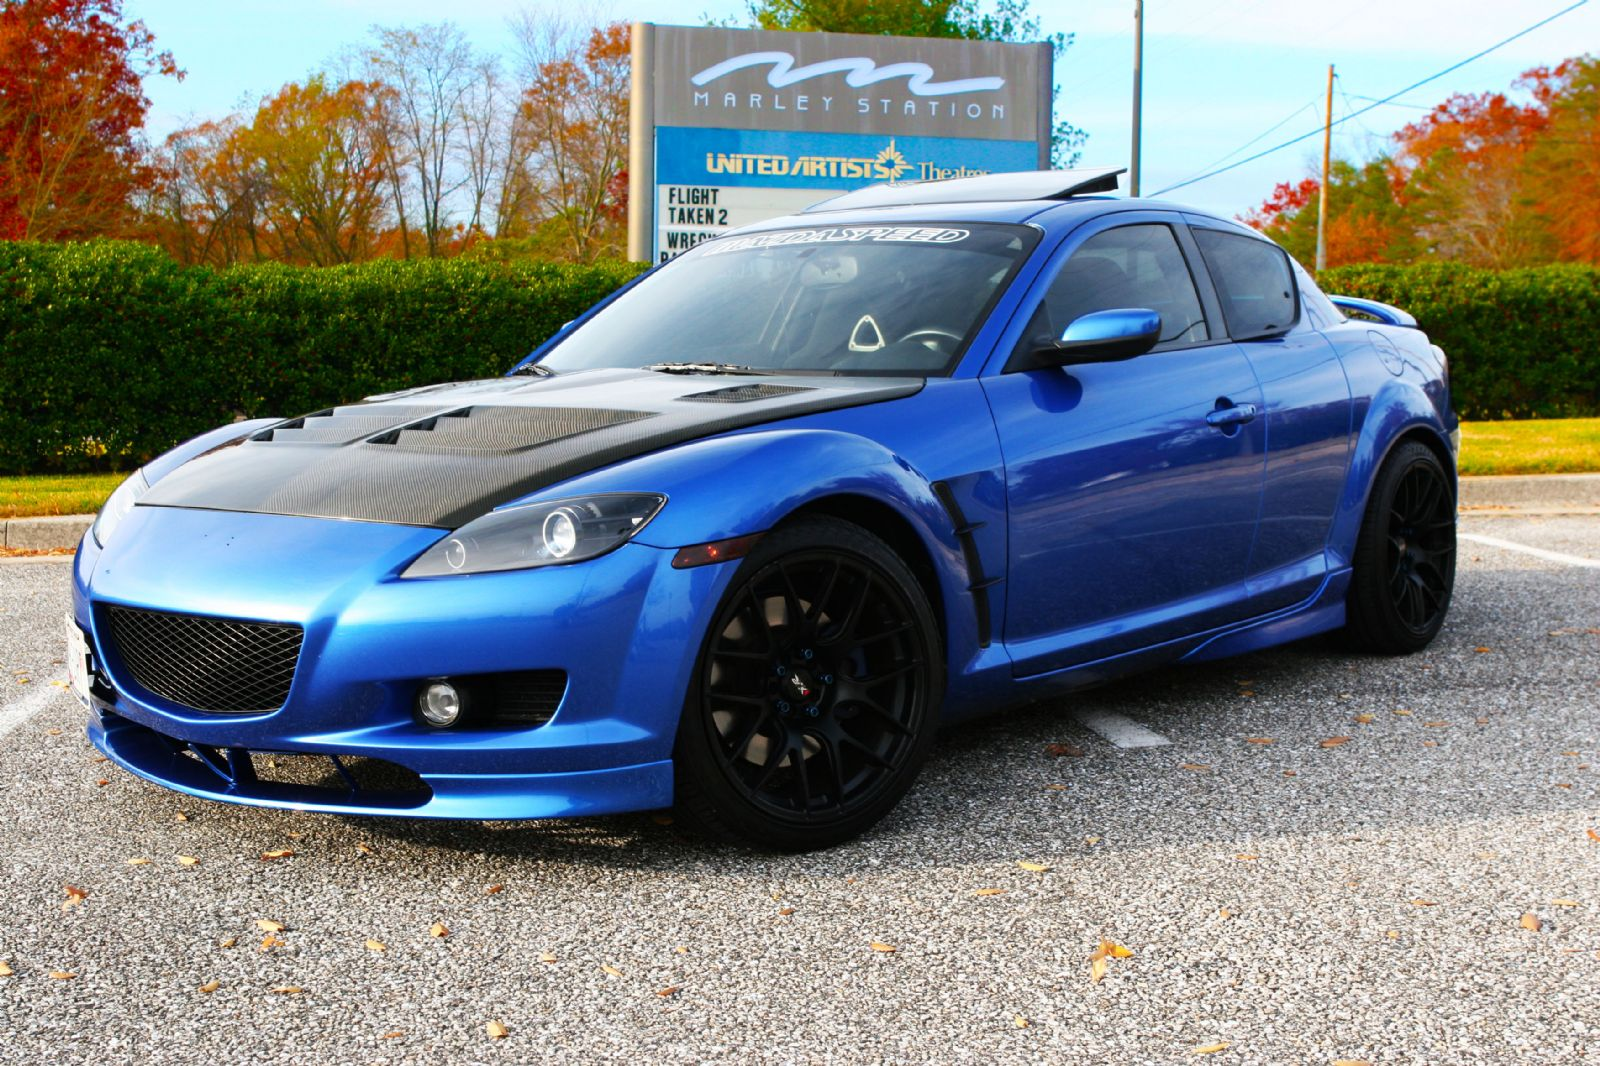 2005 Rx8 Koni Challenge Race Car For Sale: 2005 Mazda Rx8